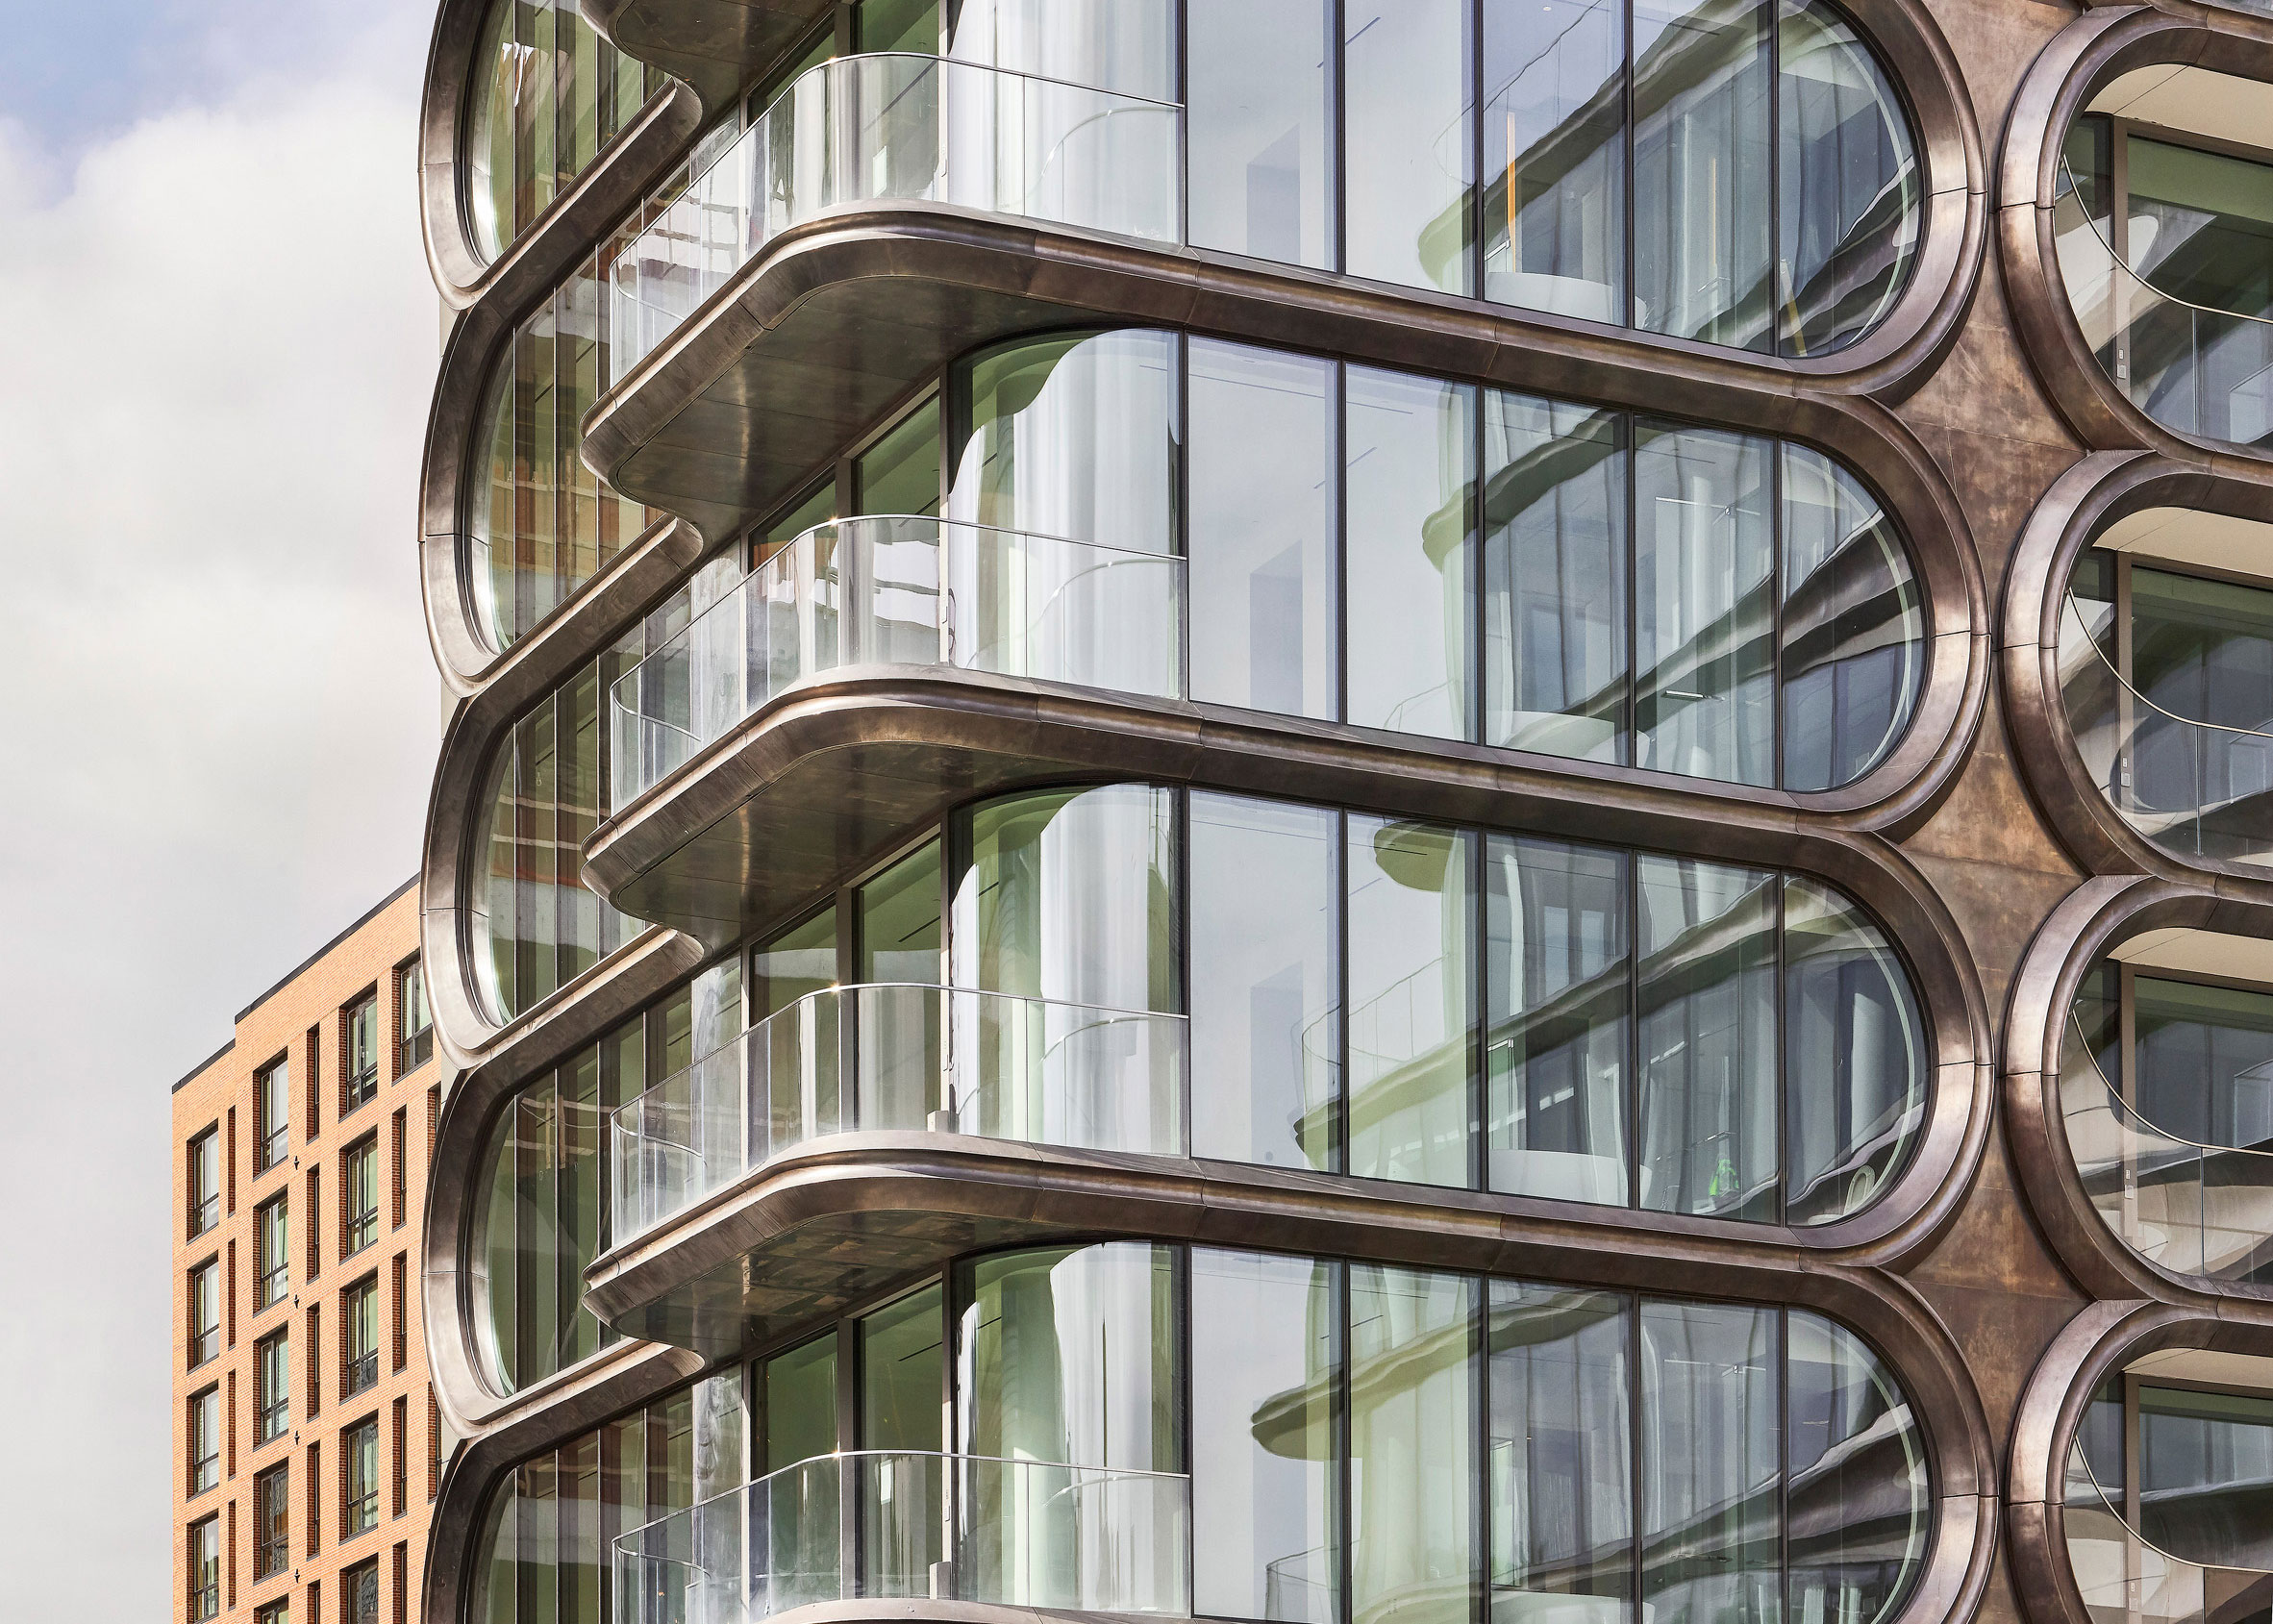 520 West 28th by Zaha Hadid Architects